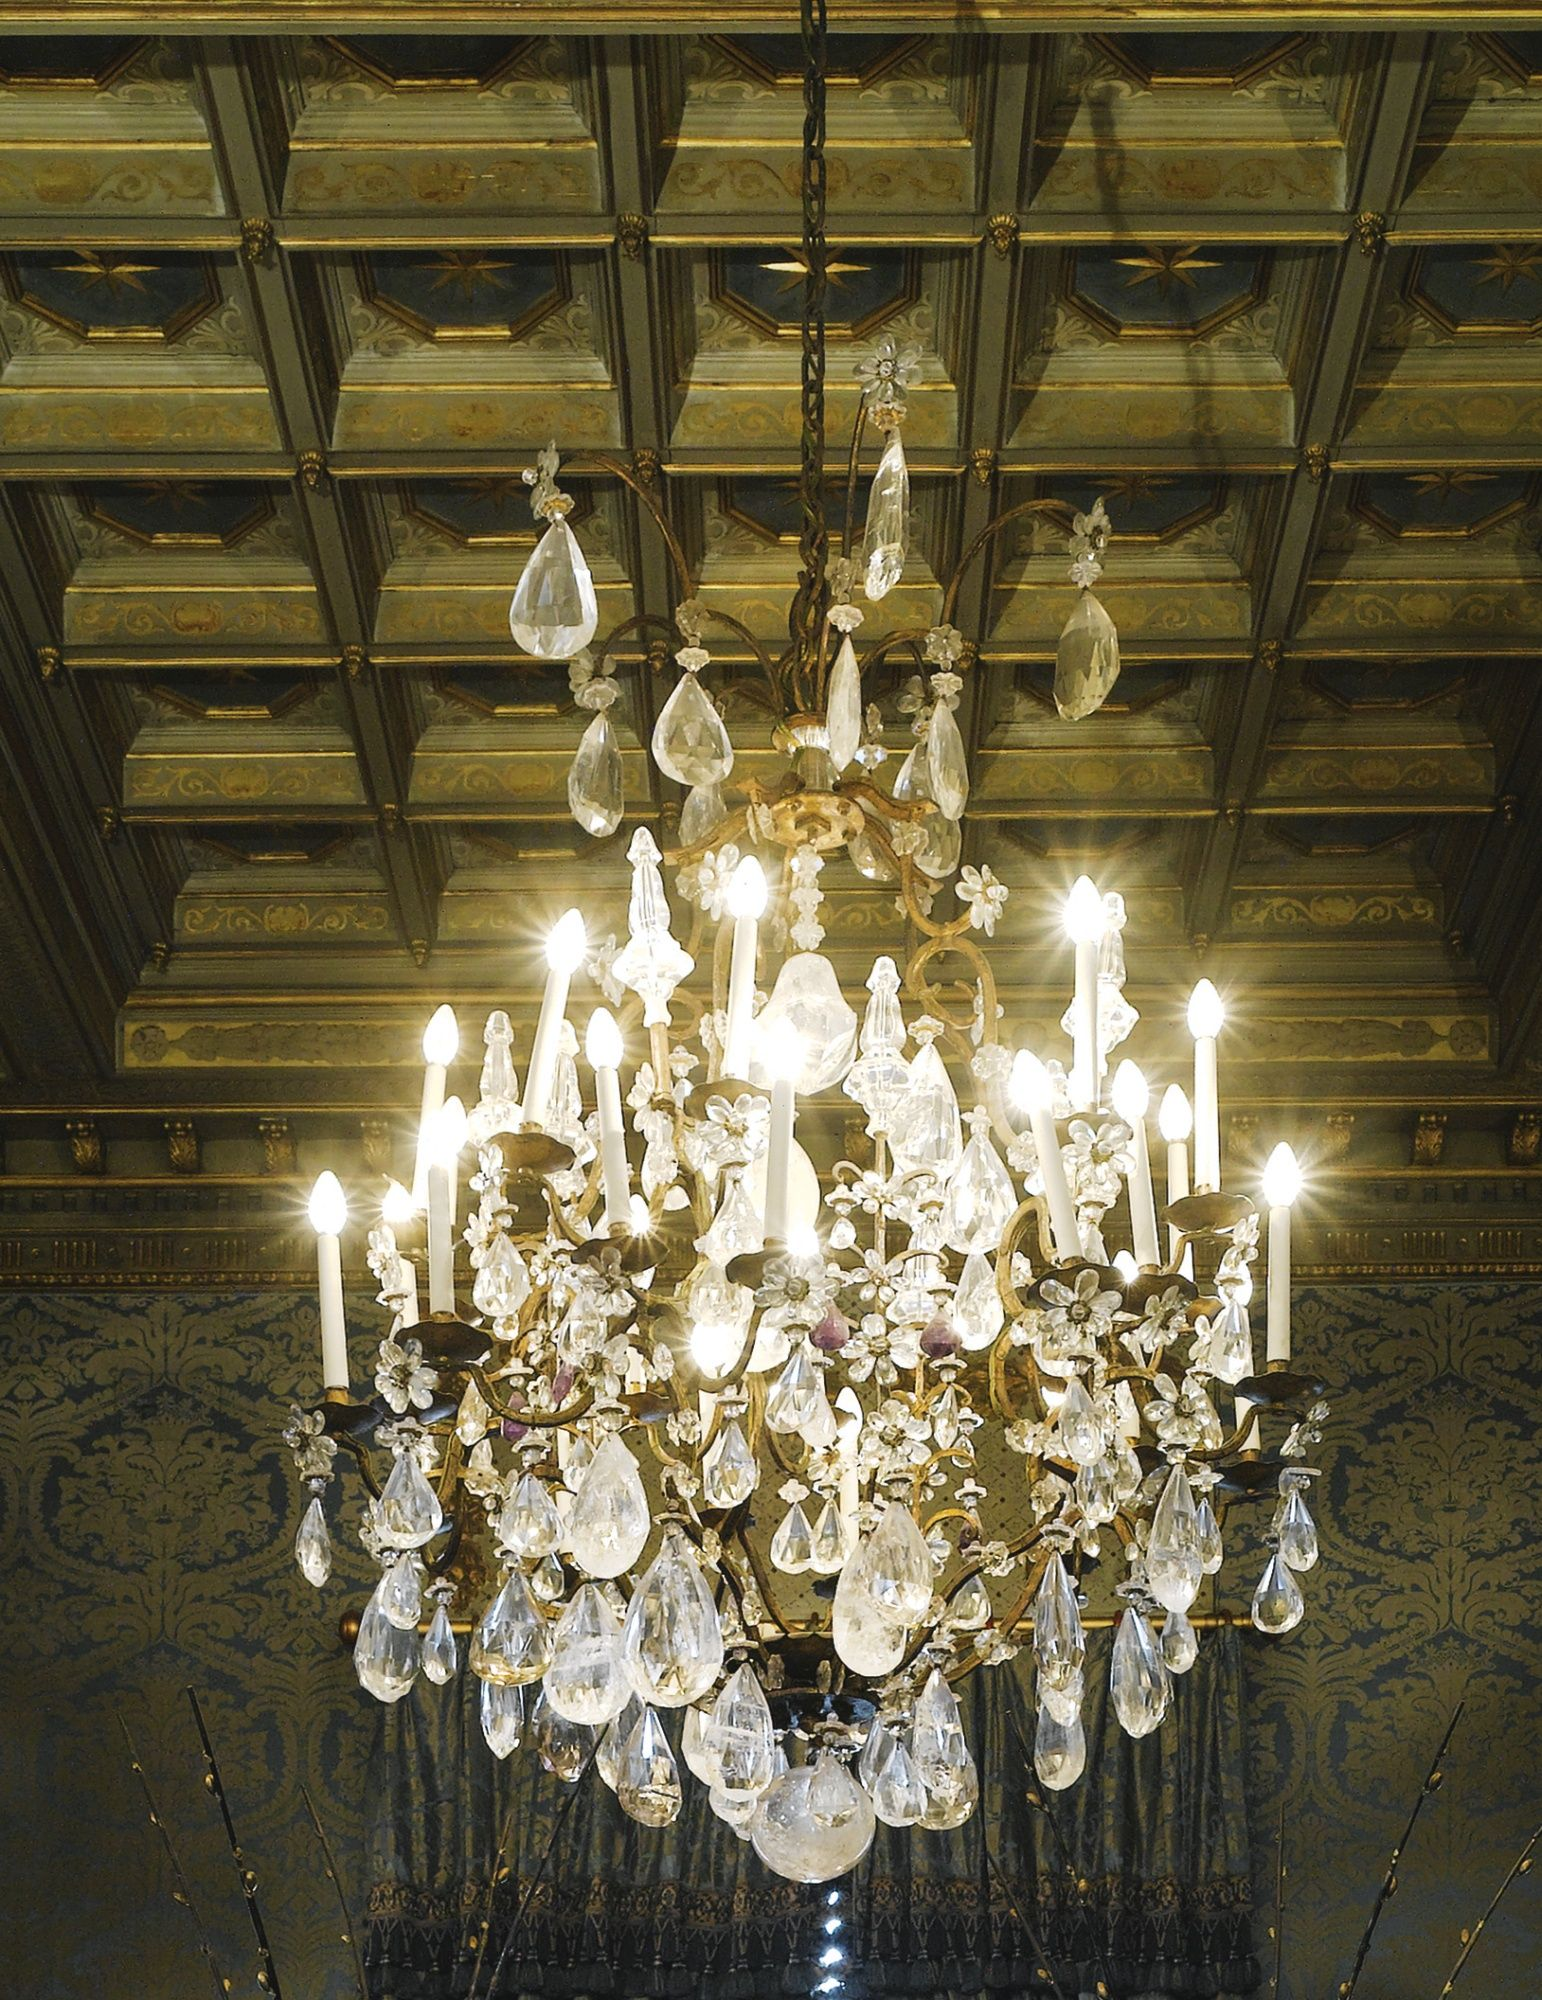 A French Gilded Iron Mounted Rock Crystal And Amethyst Glass Chandelier In 18th Century Style